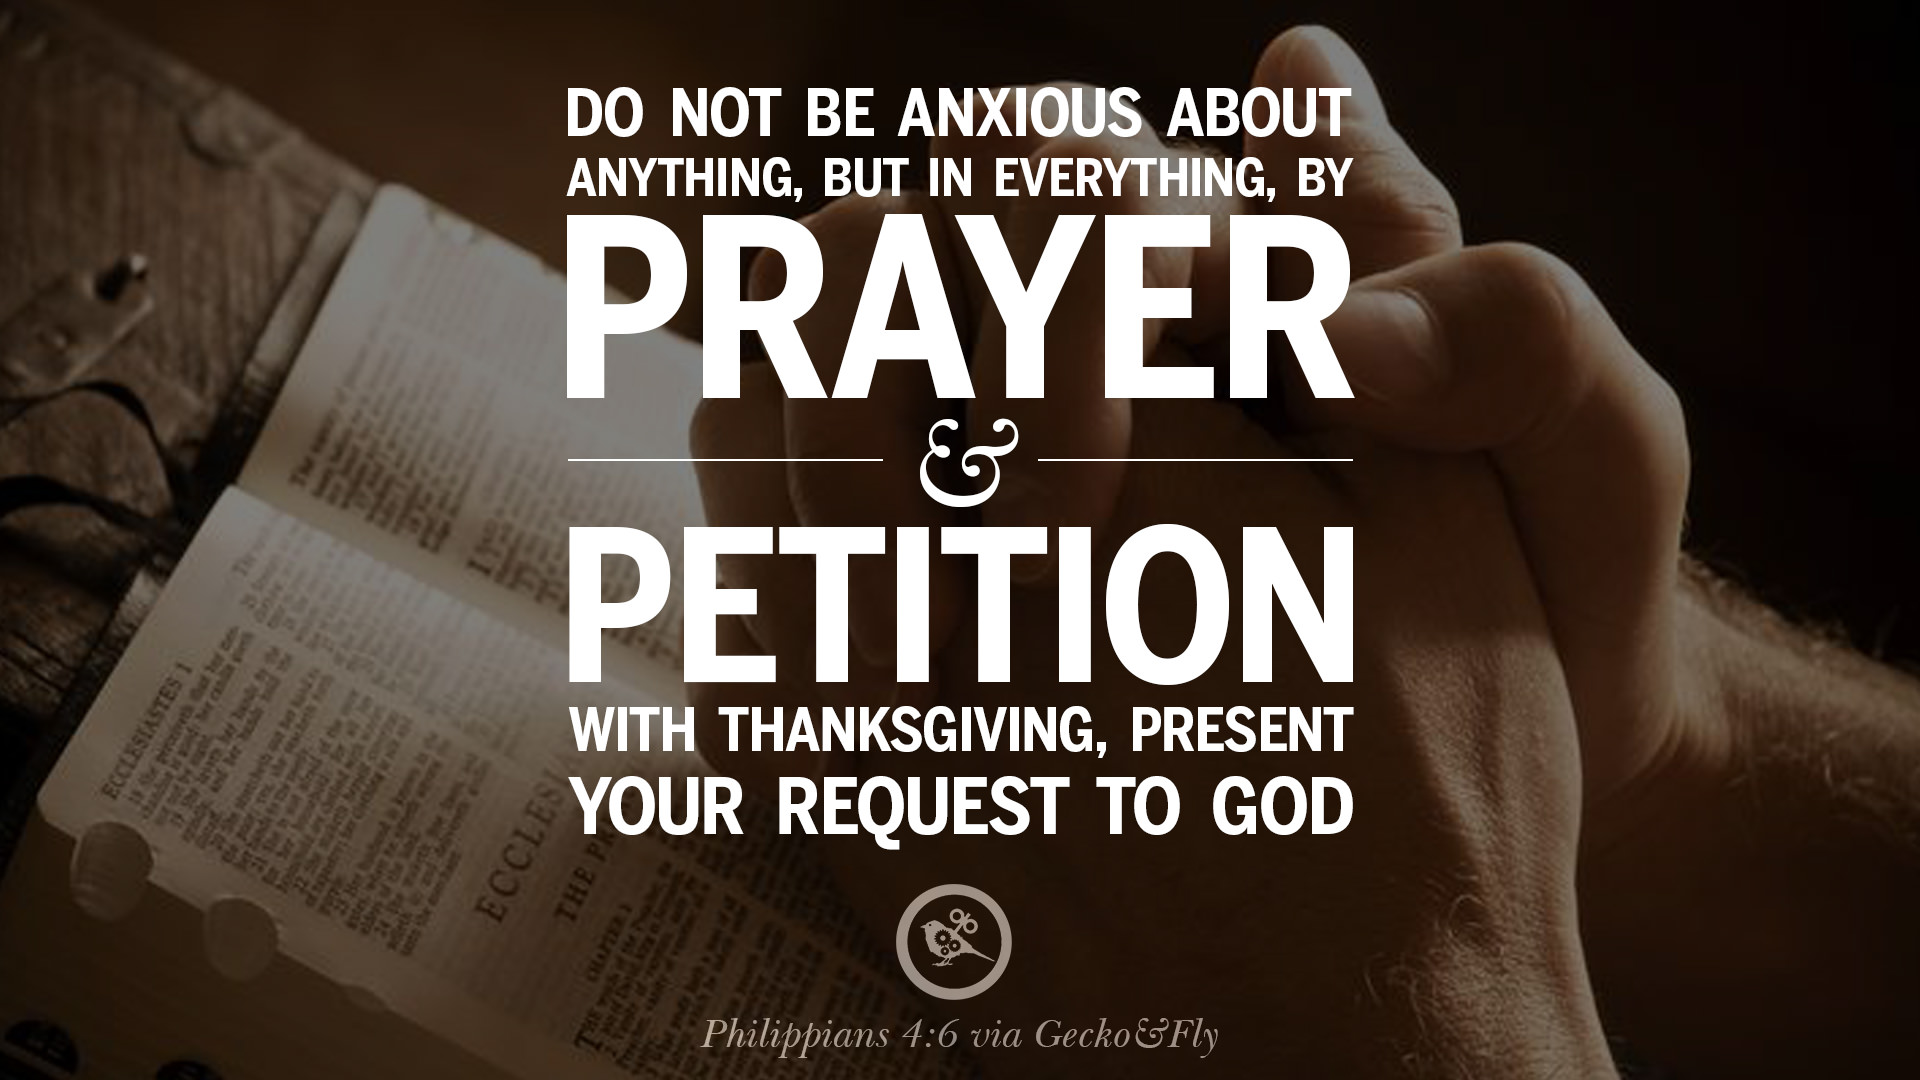 Donu0027t Be Anxious About Anything, But In Everything, By Prayer And Petition  With Thanksgiving, Present You Request To God. U2013 Philippians 4:6